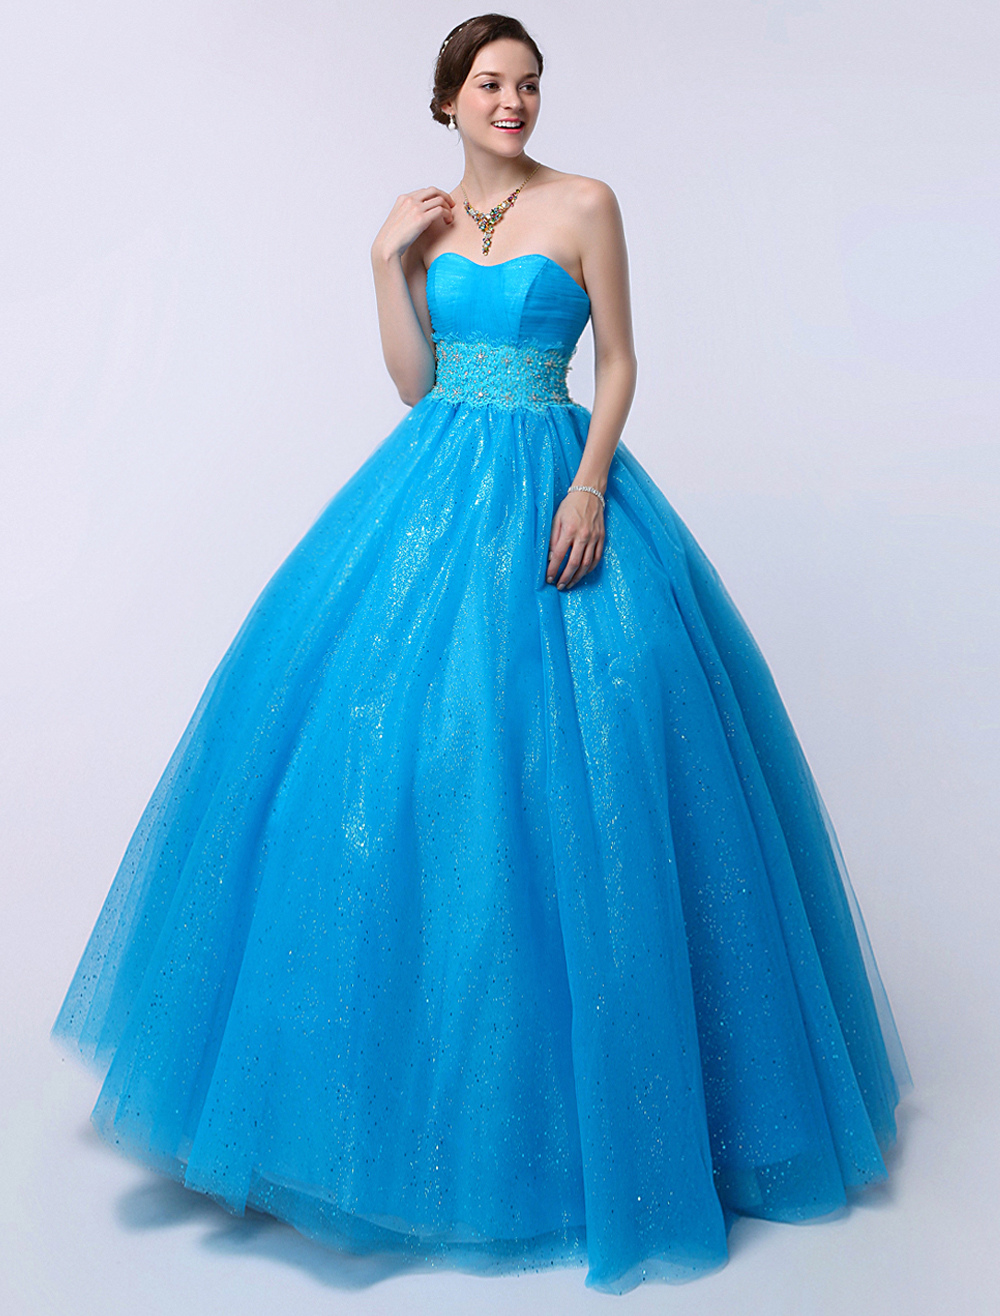 Blue Ball Gown Sweetheart Neck Floor-Length Beaded Quinceanera Dress